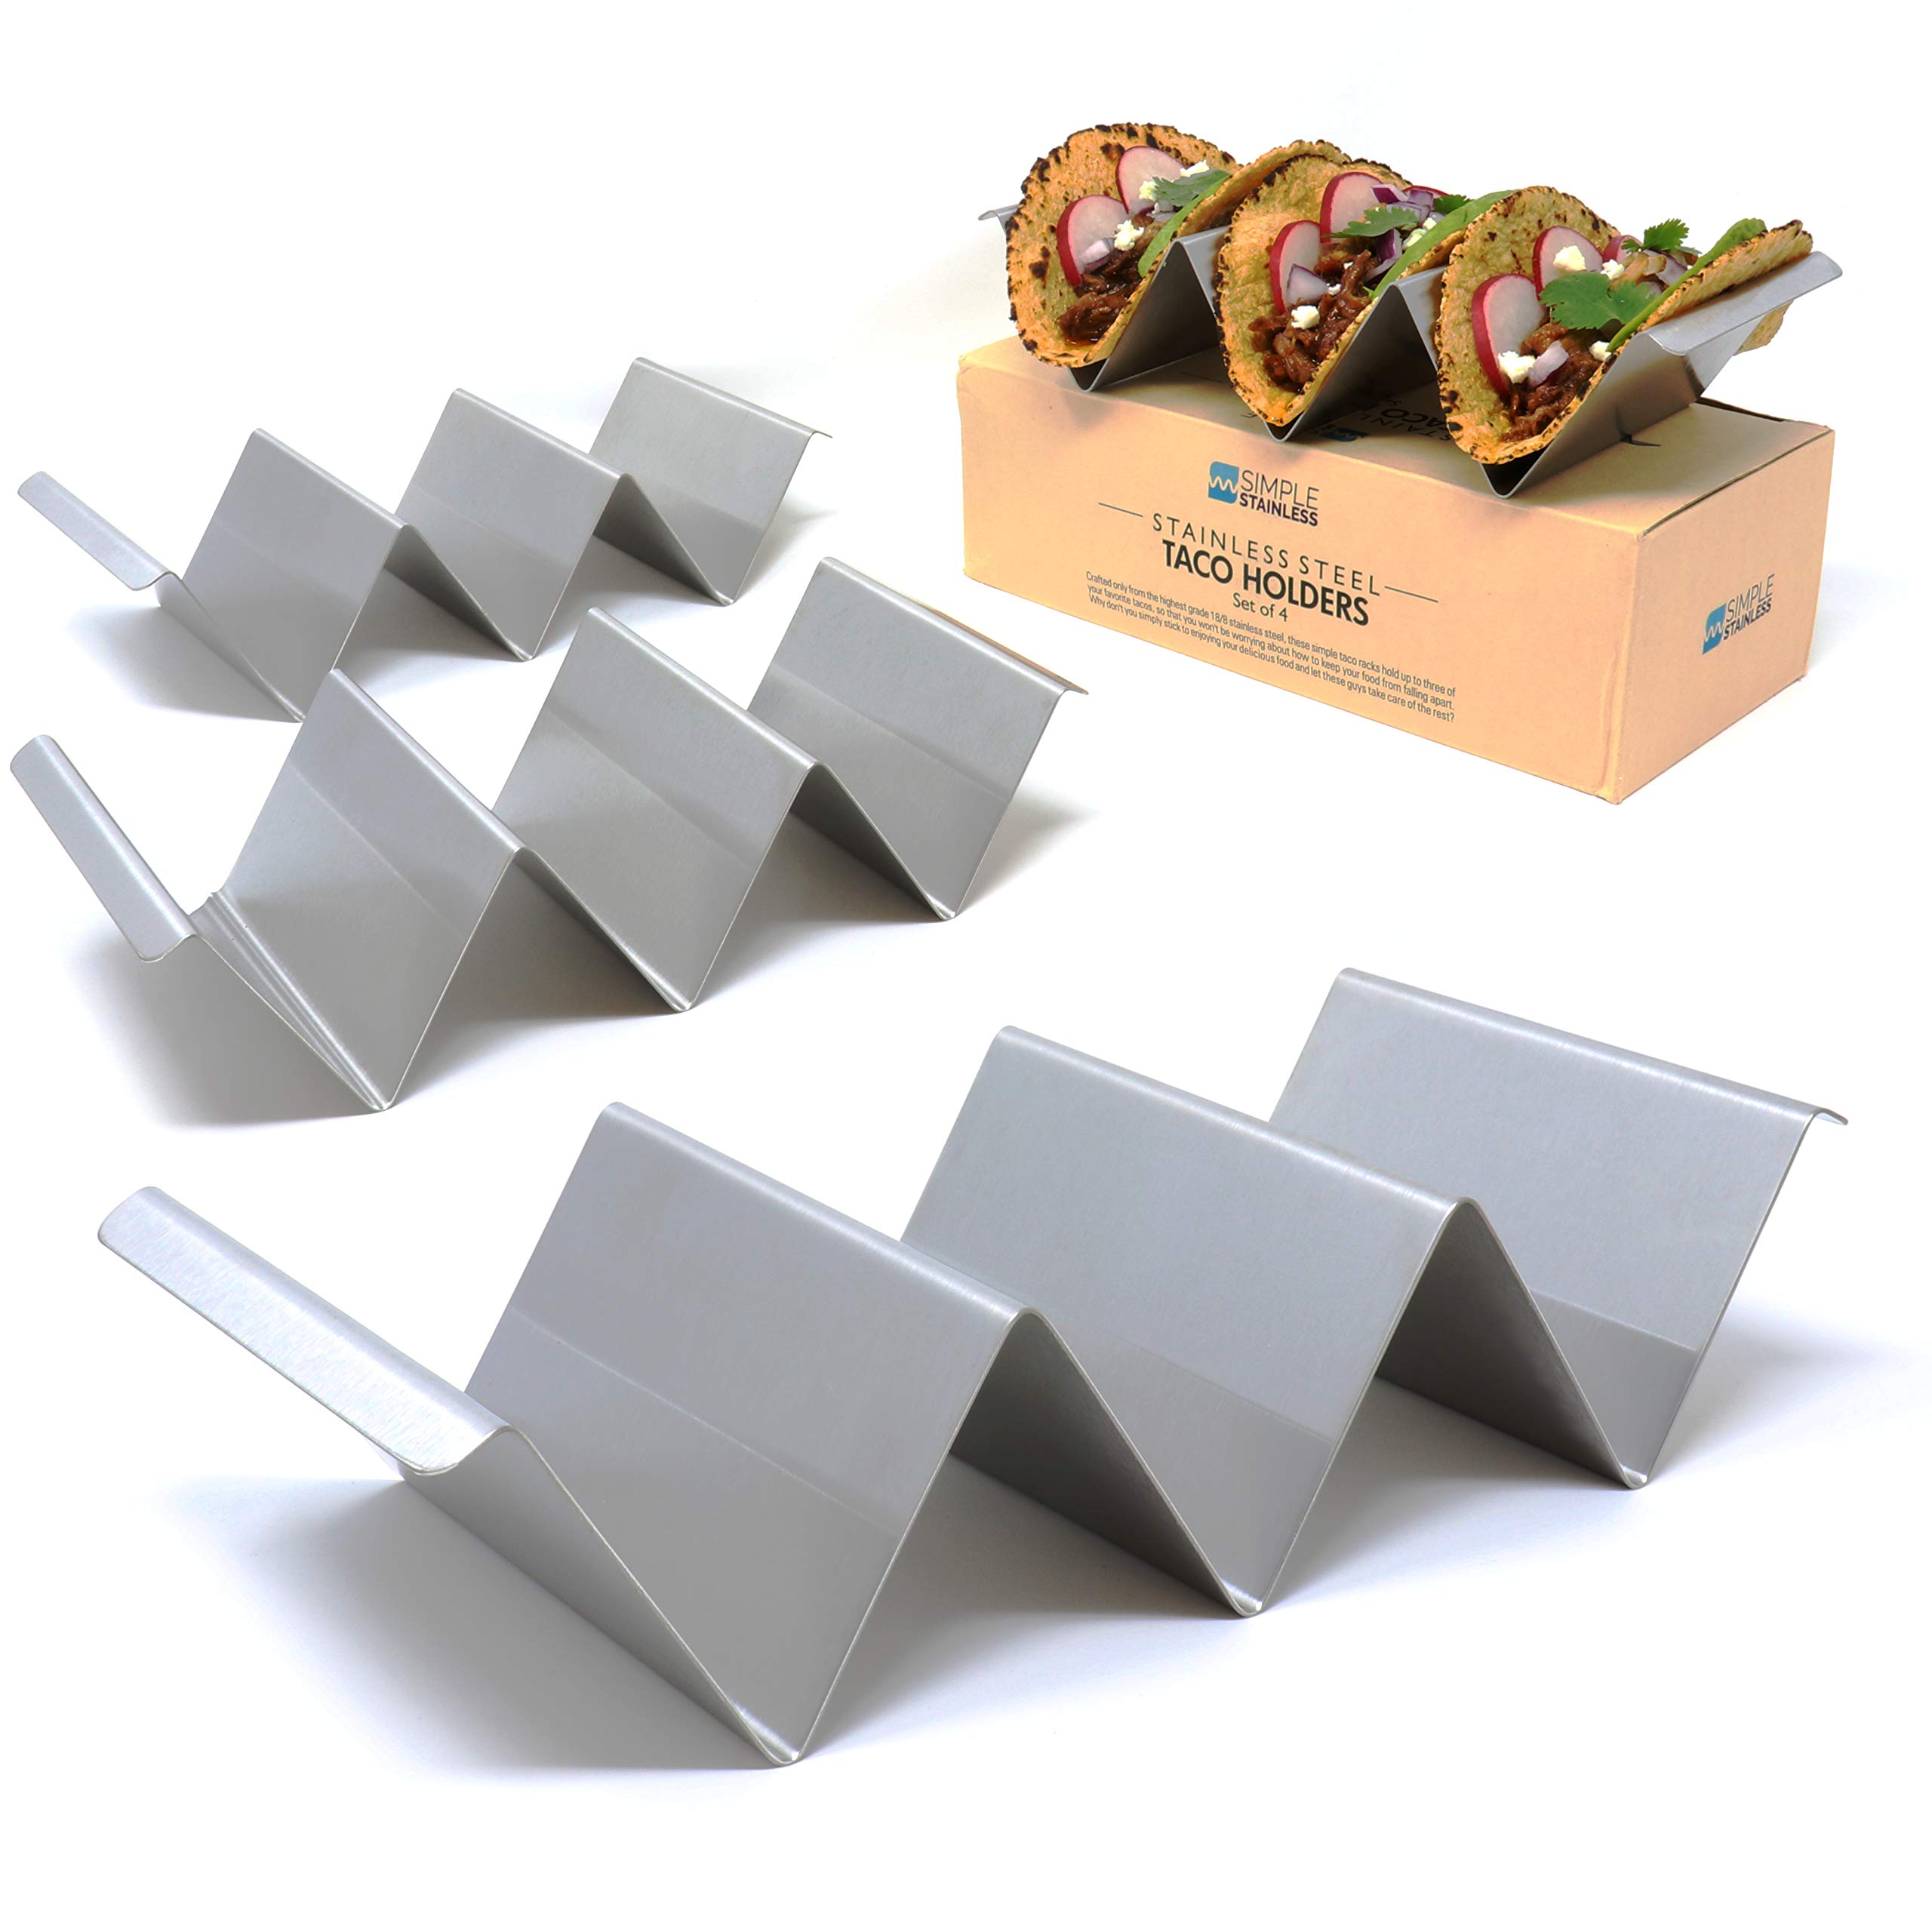 Taco Holder Stands with Handles - Set of 4 - Crafted from Food Grade Stainless Steel - Each Rack Holds 3 Tacos/Tortillas - Compact Design with Handles - For Restaurant & Home Use - By SimpleStainless by SimpleStainless